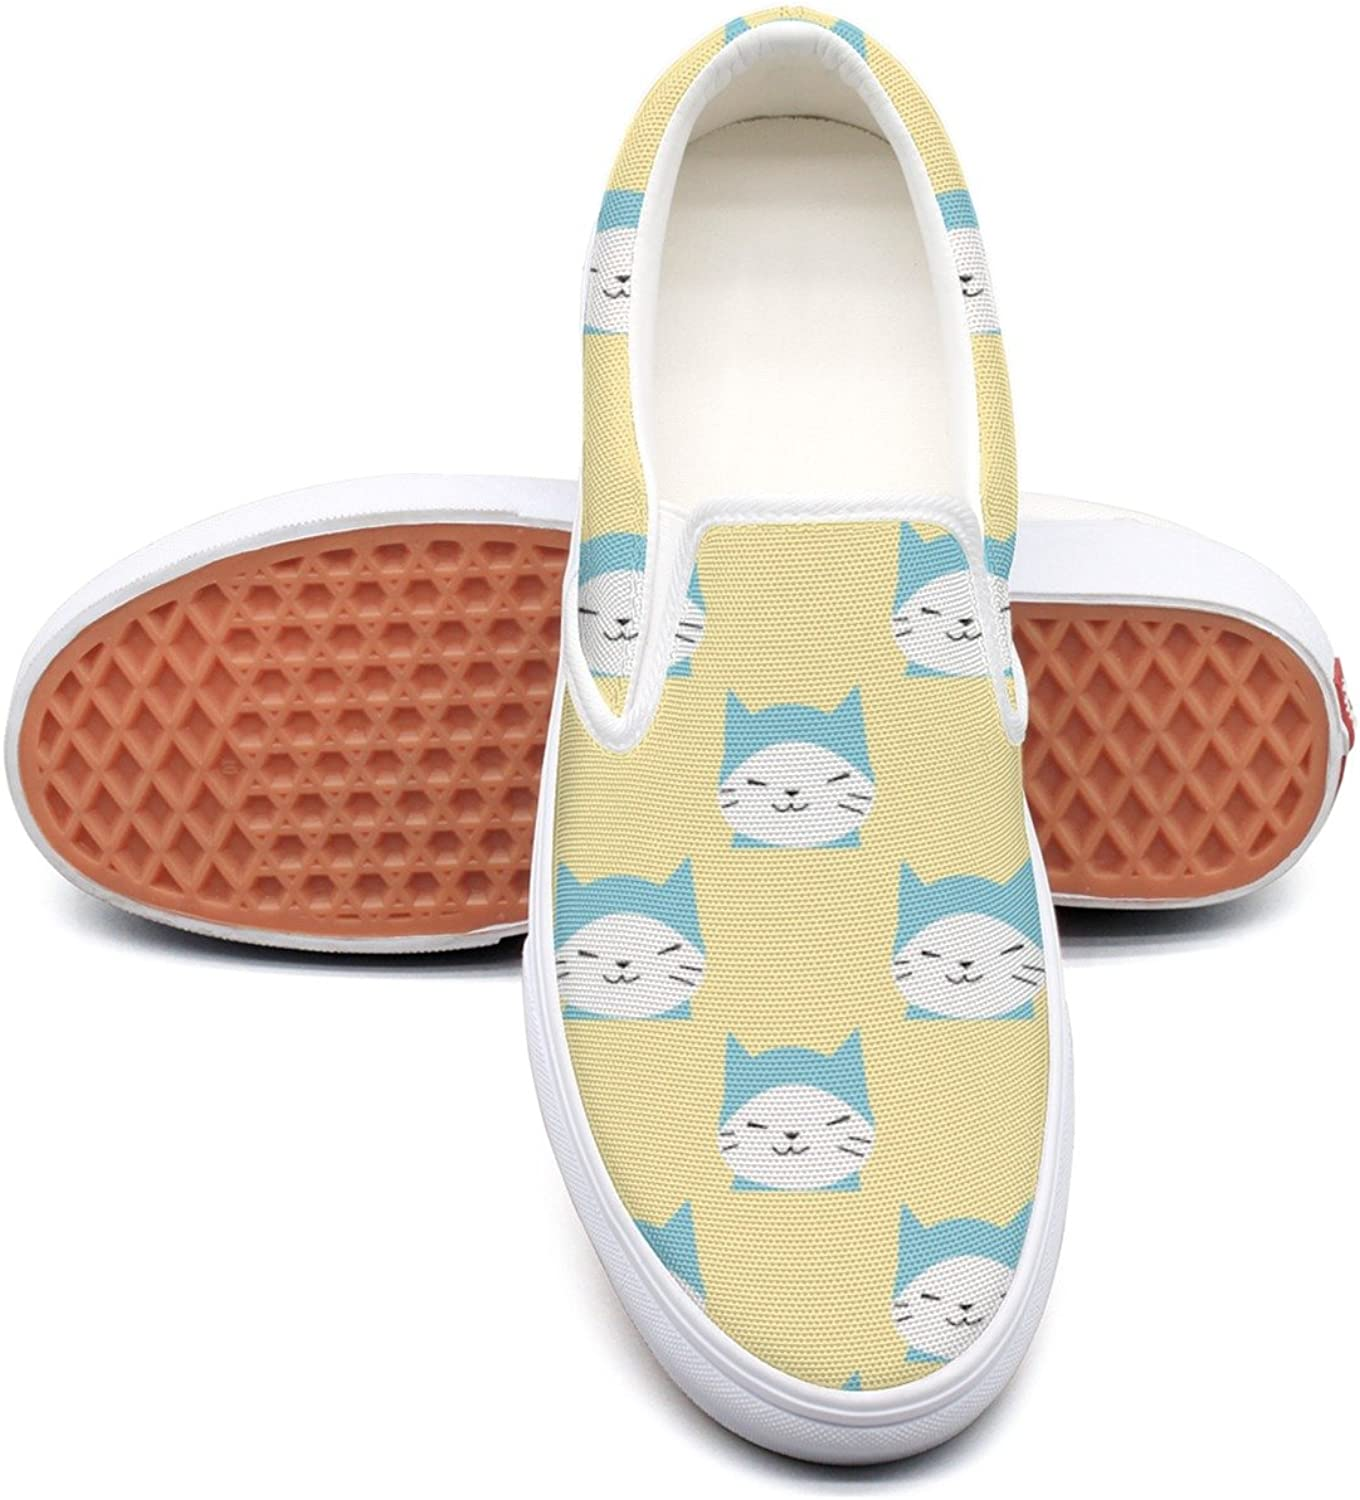 Lalige Cartoon Kitty Cat Meow Women's Printed Graphics Canvas Slip-on Sneakers